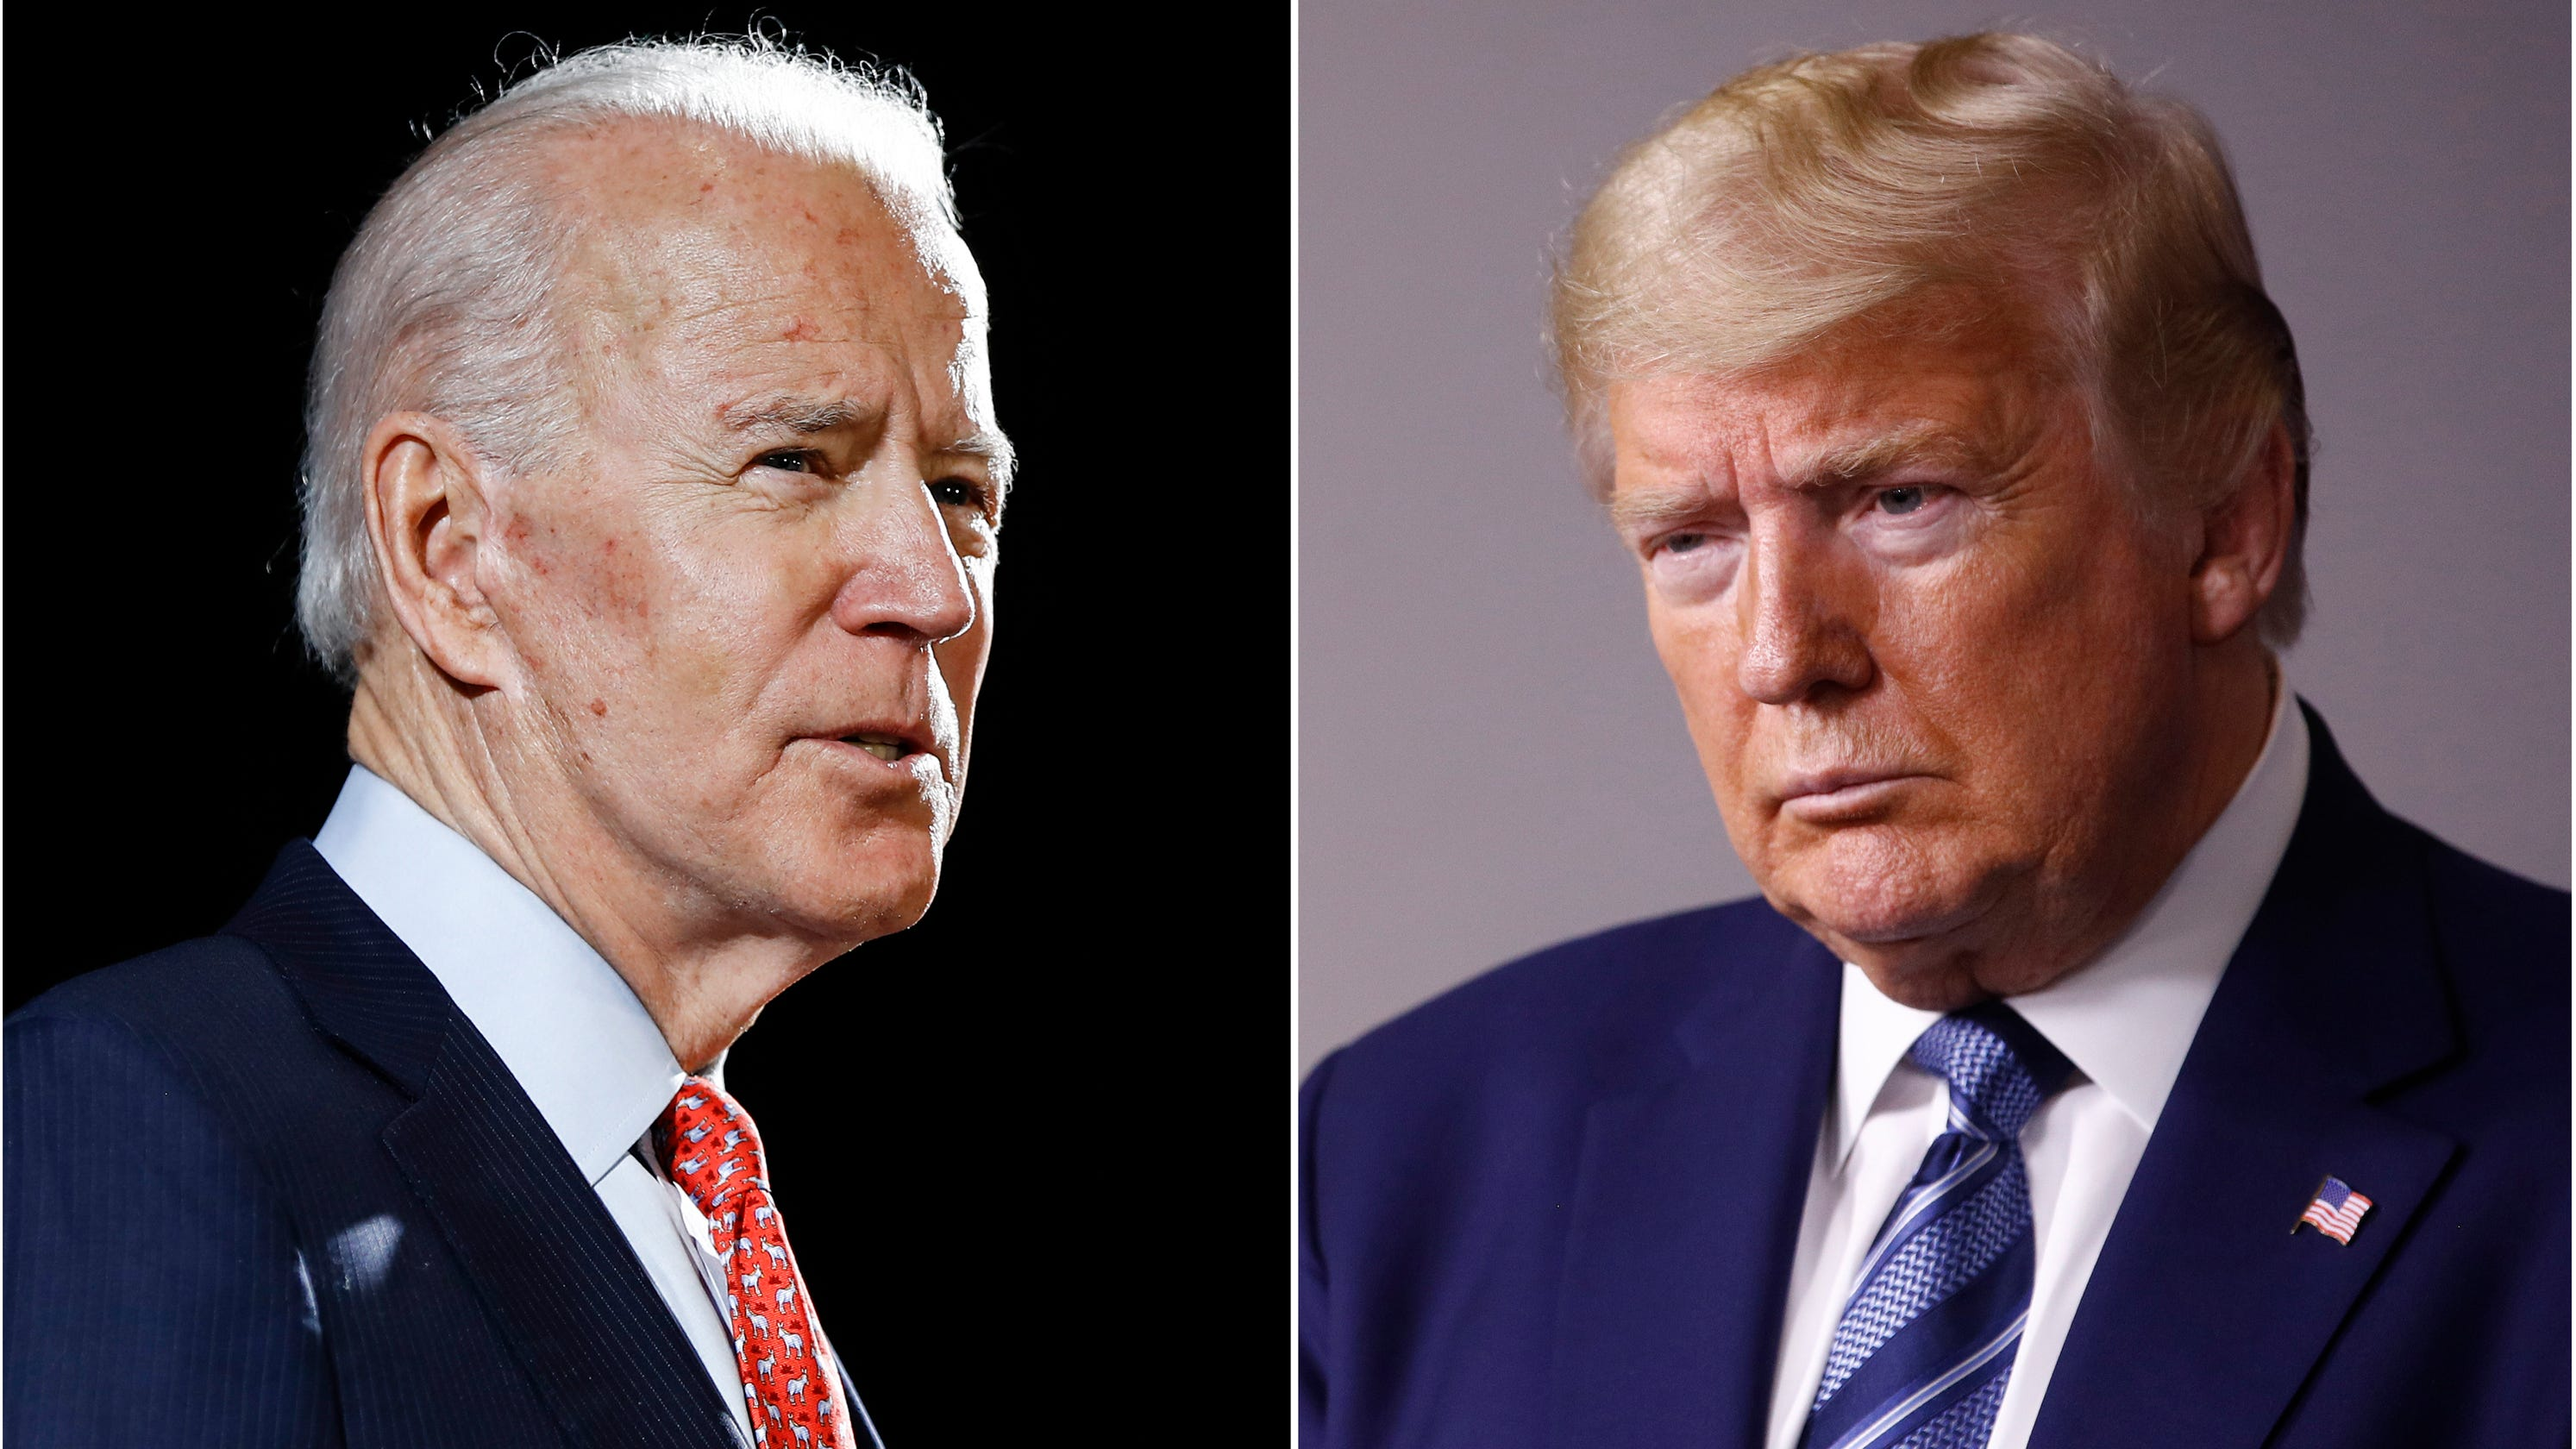 Here's what to know about the Joe Biden Donald Trump competing town halls tonight – USA TODAY